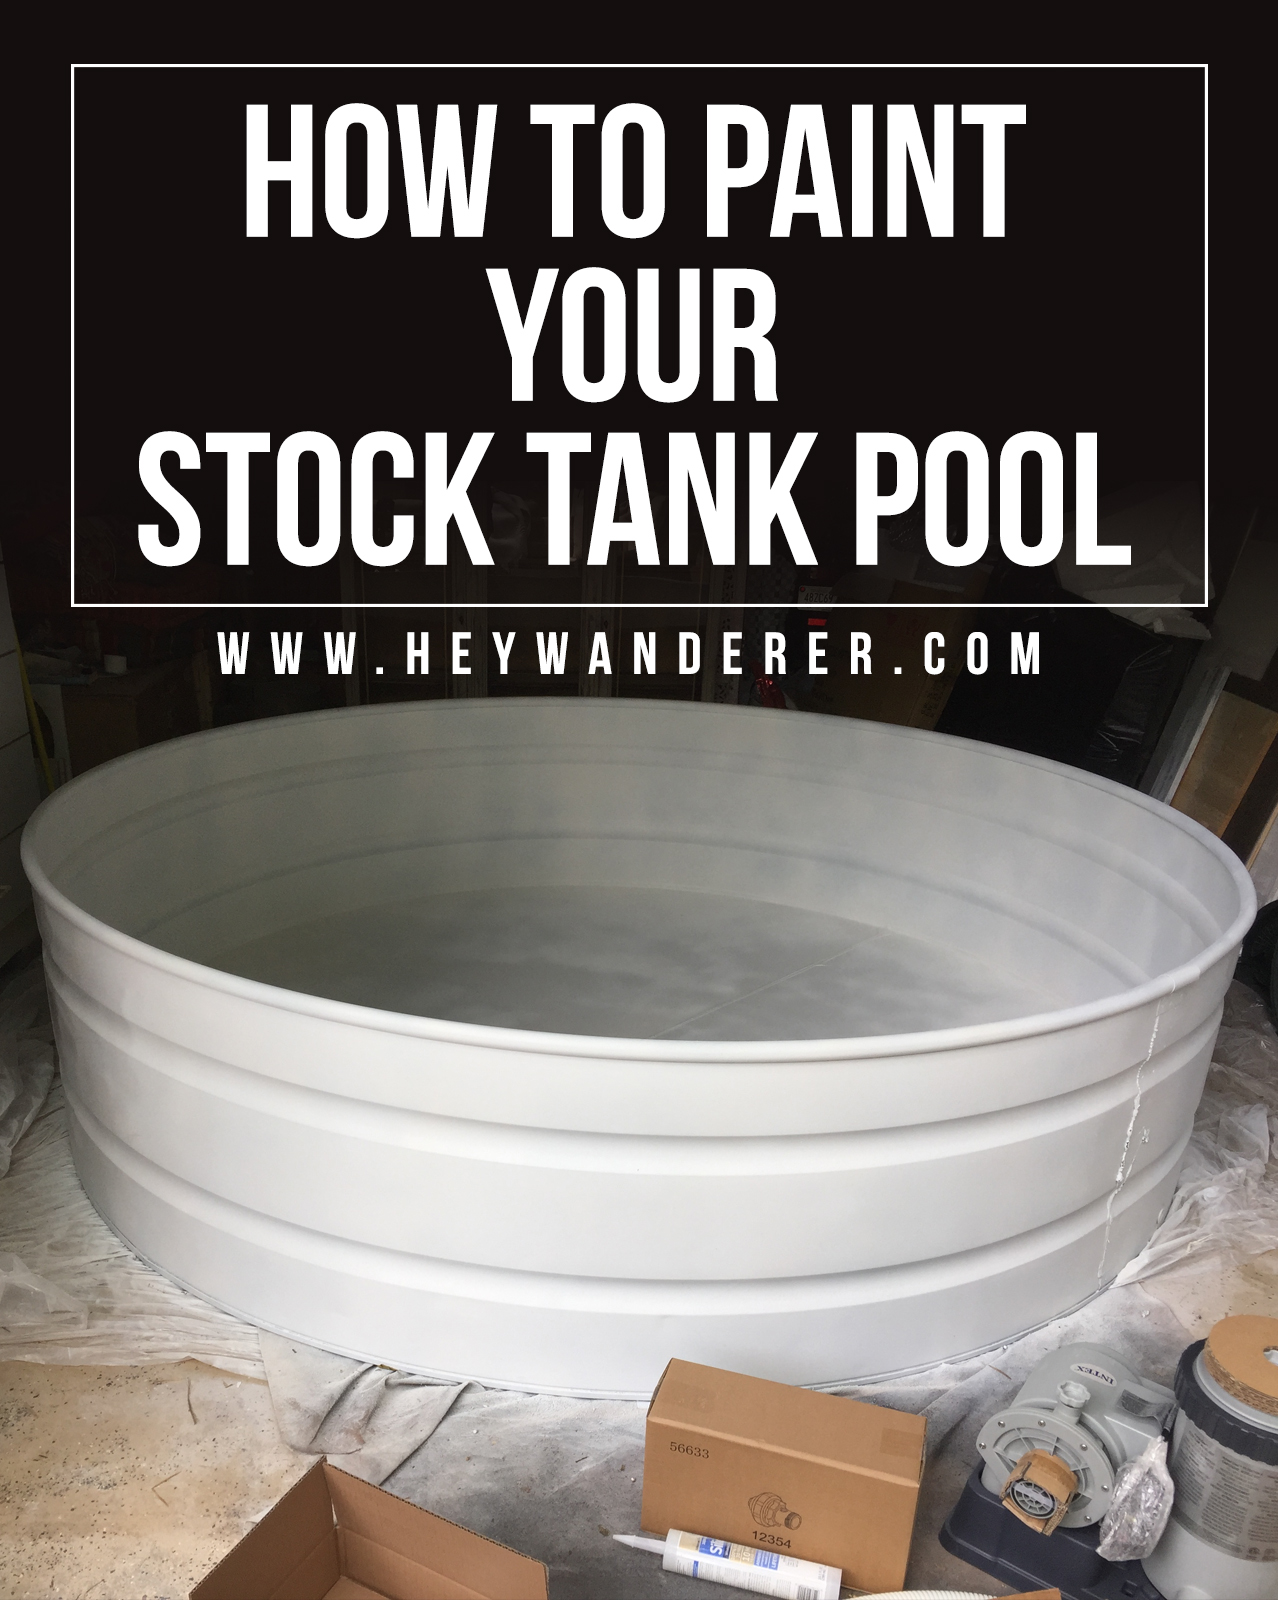 The Best Way To Paint Your Stock Tank Pool